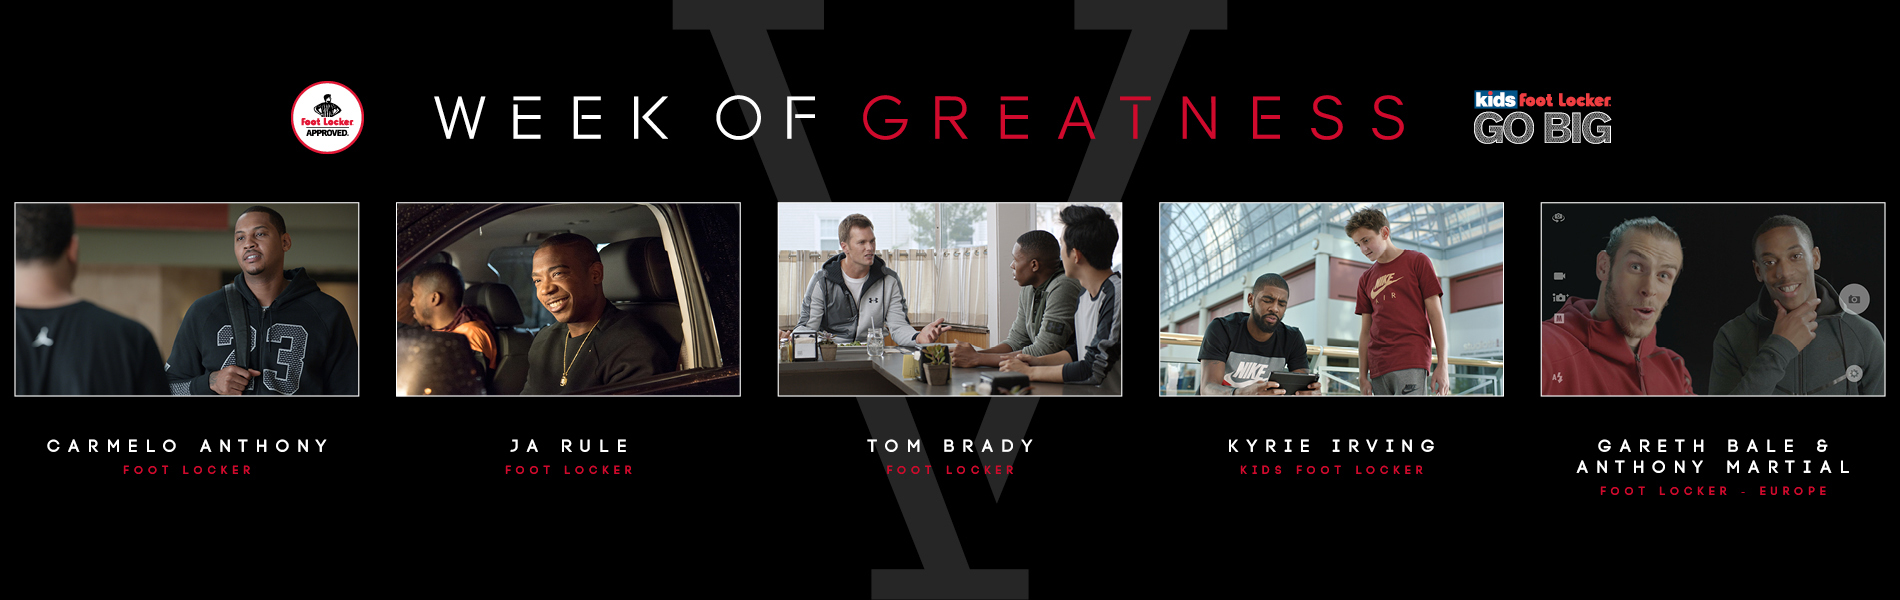 42113c2ed6 FOOT LOCKER AND KIDS FOOT LOCKER KICK OFF FIFTH-ANNUAL 'WEEK OF GREATNESS'  WITH NEW SPOTS AND THE HOTTEST PRODUCT